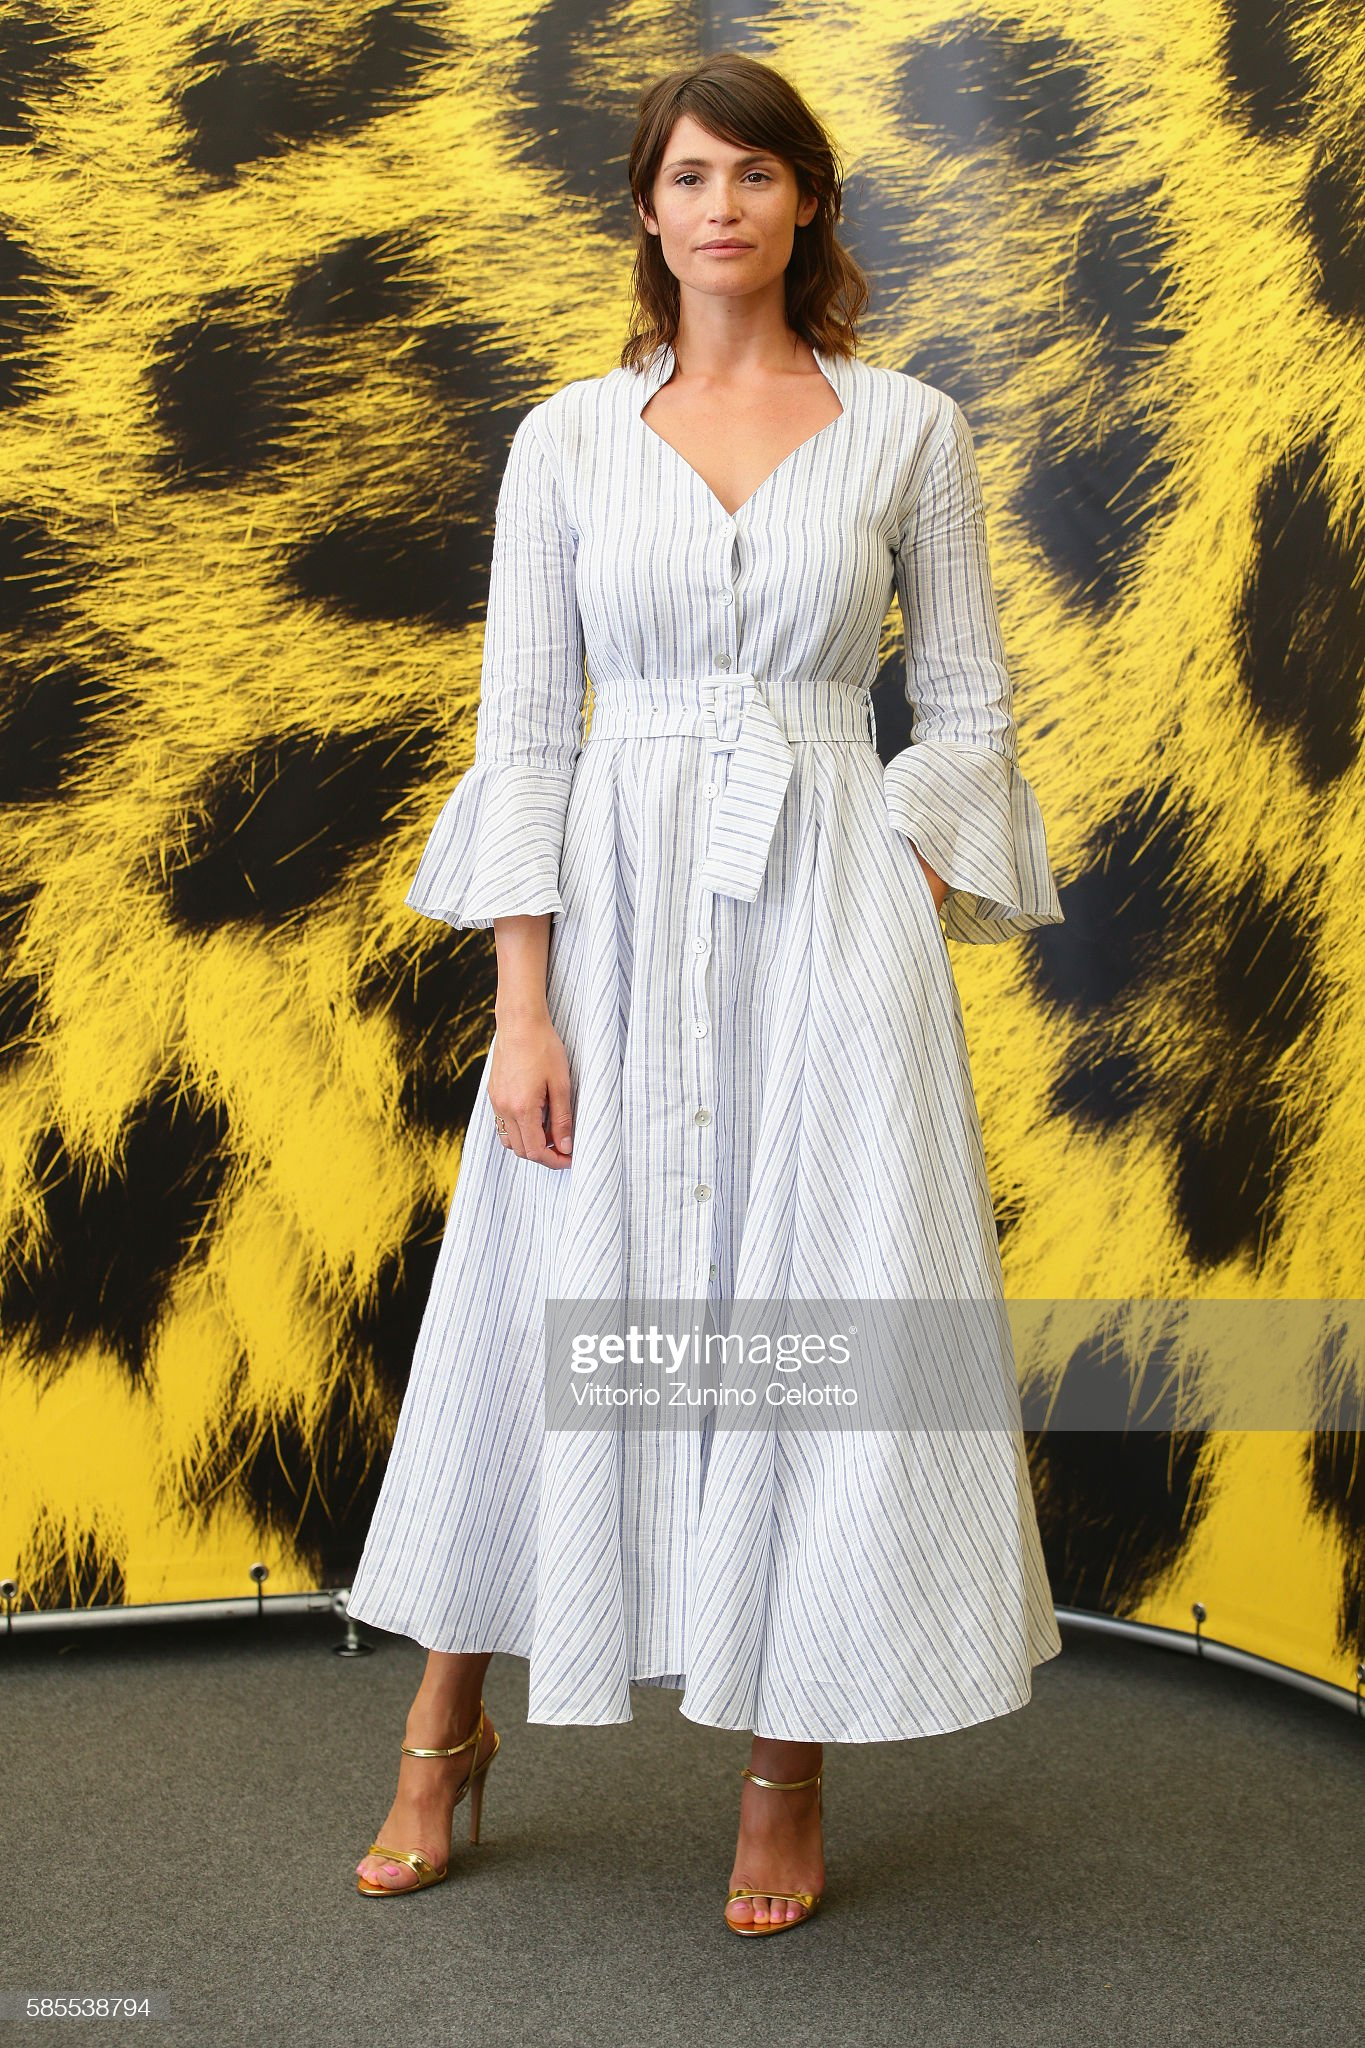 actress-gemma-arterton-attends-the-girl-with-all-the-gifts-photocall-picture-id585538794